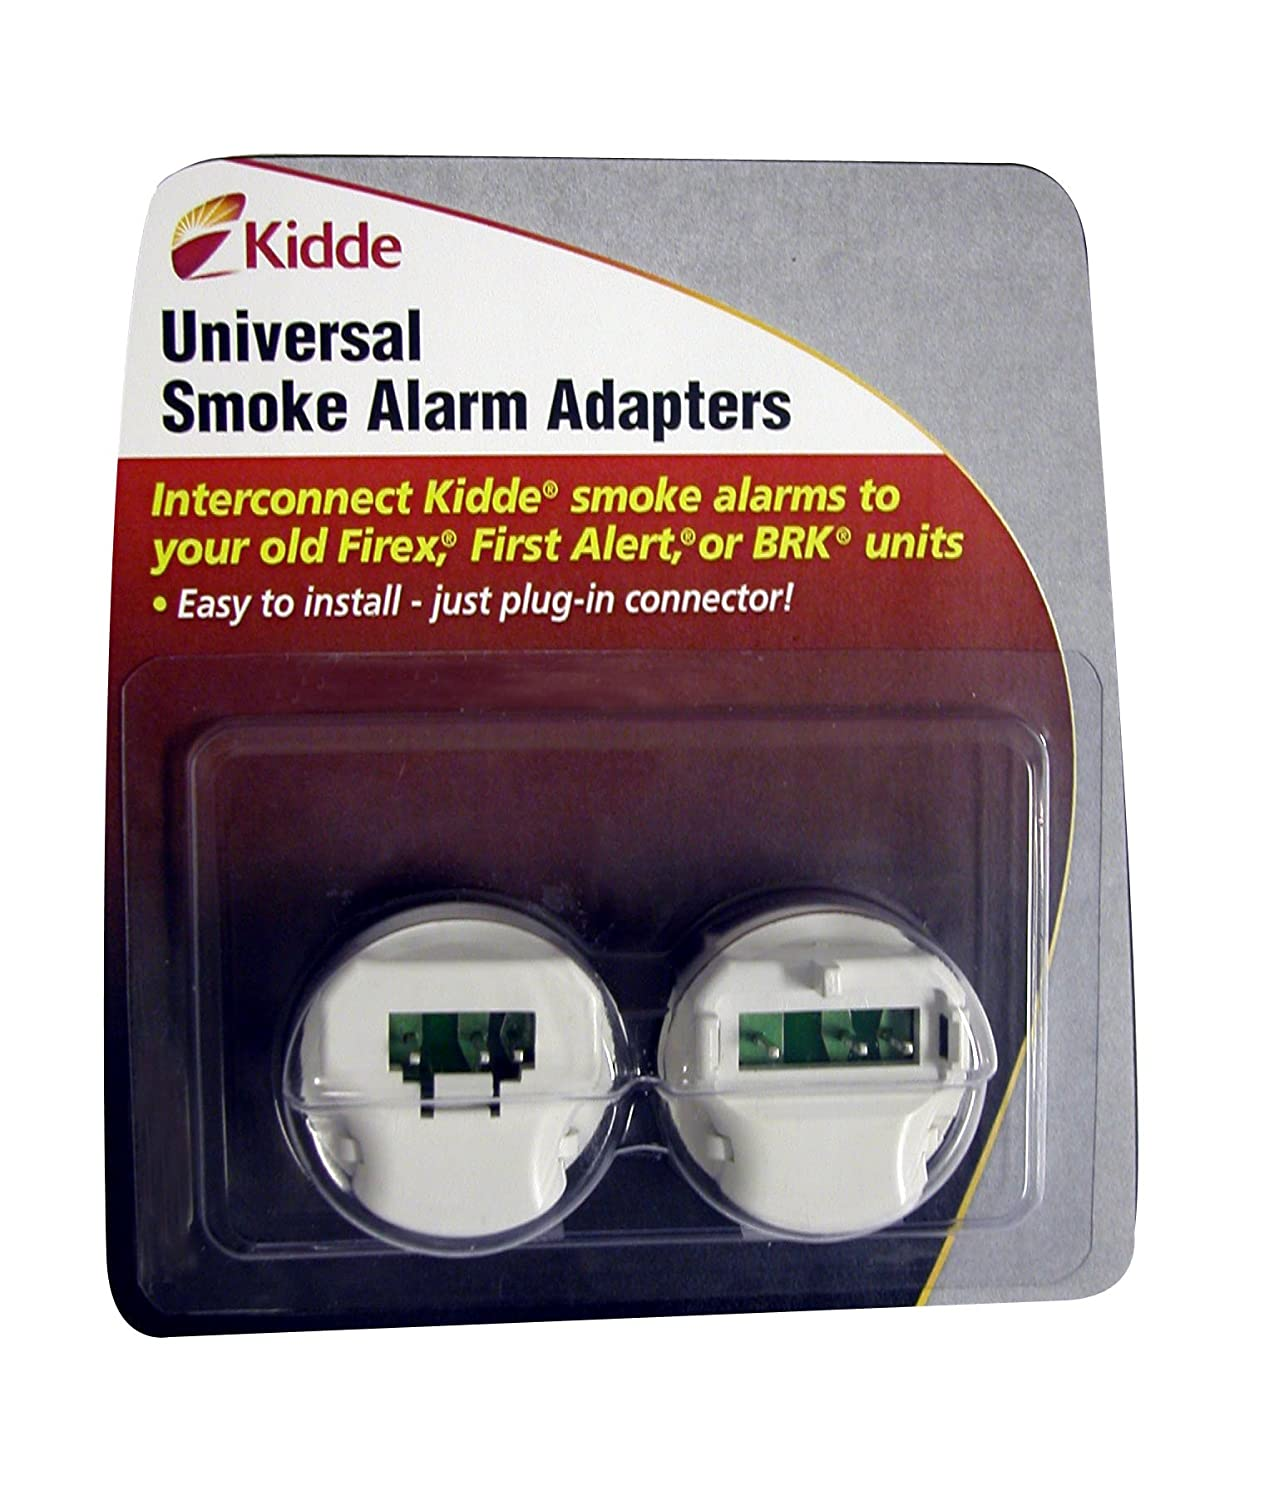 814Se4H5loL._SL1500_ kidde ka b, ka f universal smoke alarm adapters, 2 different units  at edmiracle.co